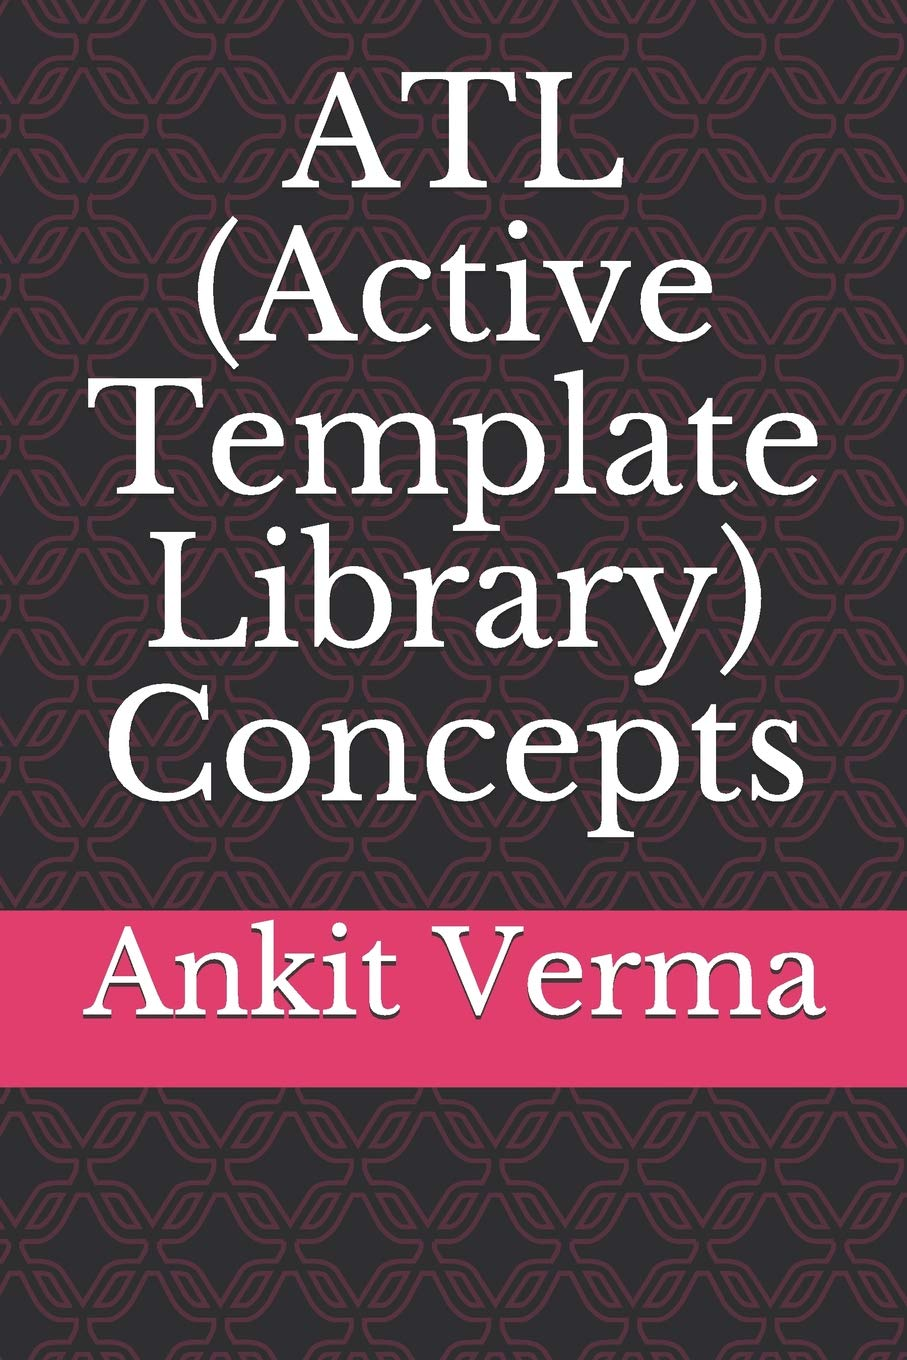 Buy Atl Active Template Library Concepts Book Online At Low Prices In India Atl Active Template Library Concepts Reviews Ratings Amazon In